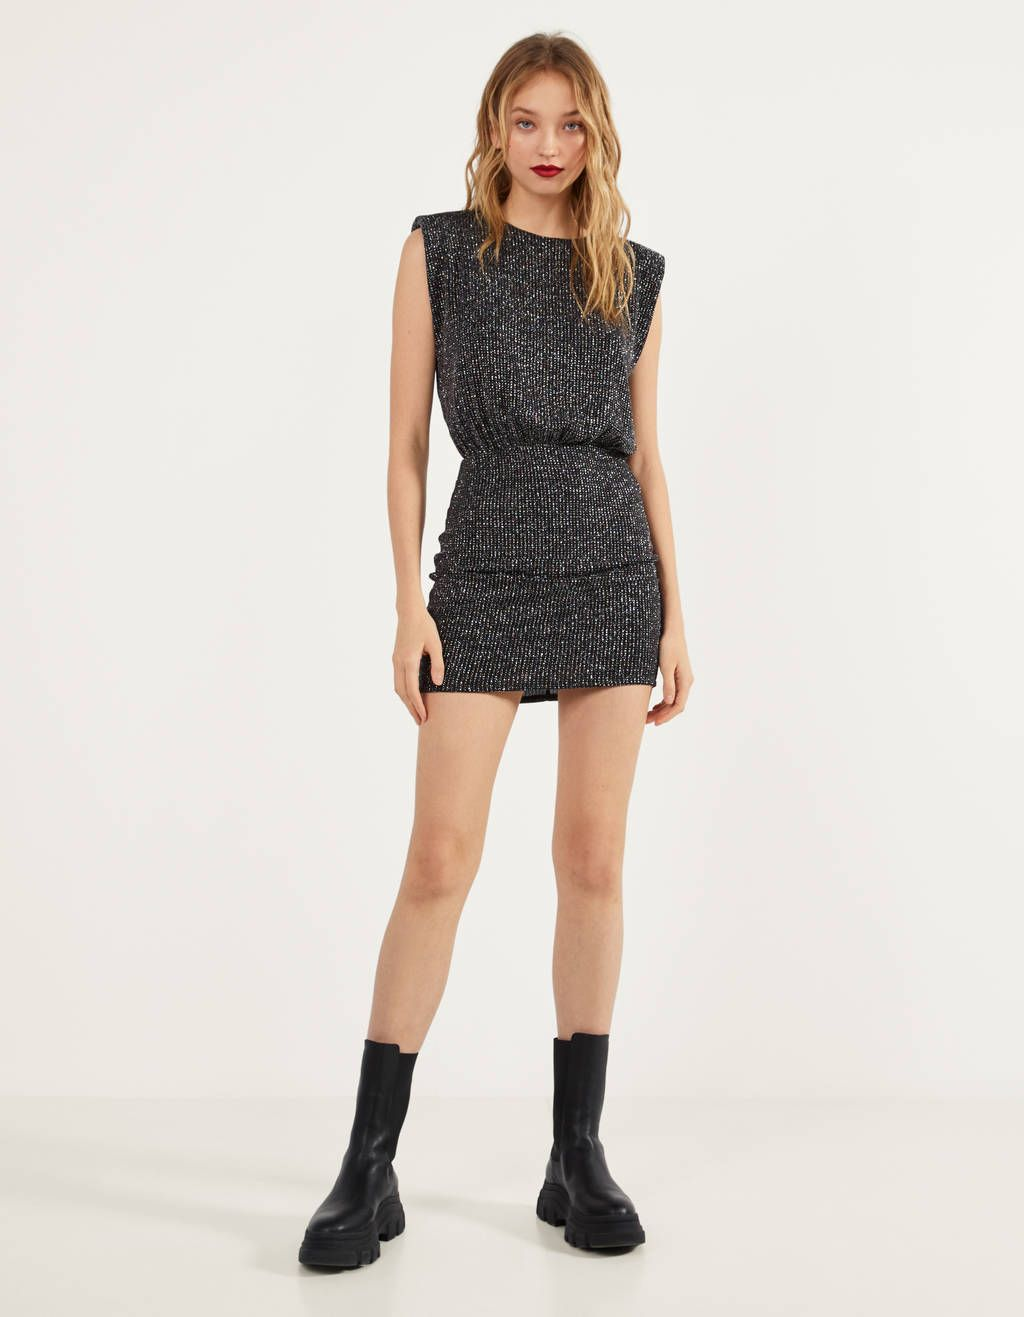 Metallic Thread Dress With Shoulder Pads Party Collection Bershka United States Shoulder Pad Dress Dresses Shoulder Pads [ 1317 x 1024 Pixel ]